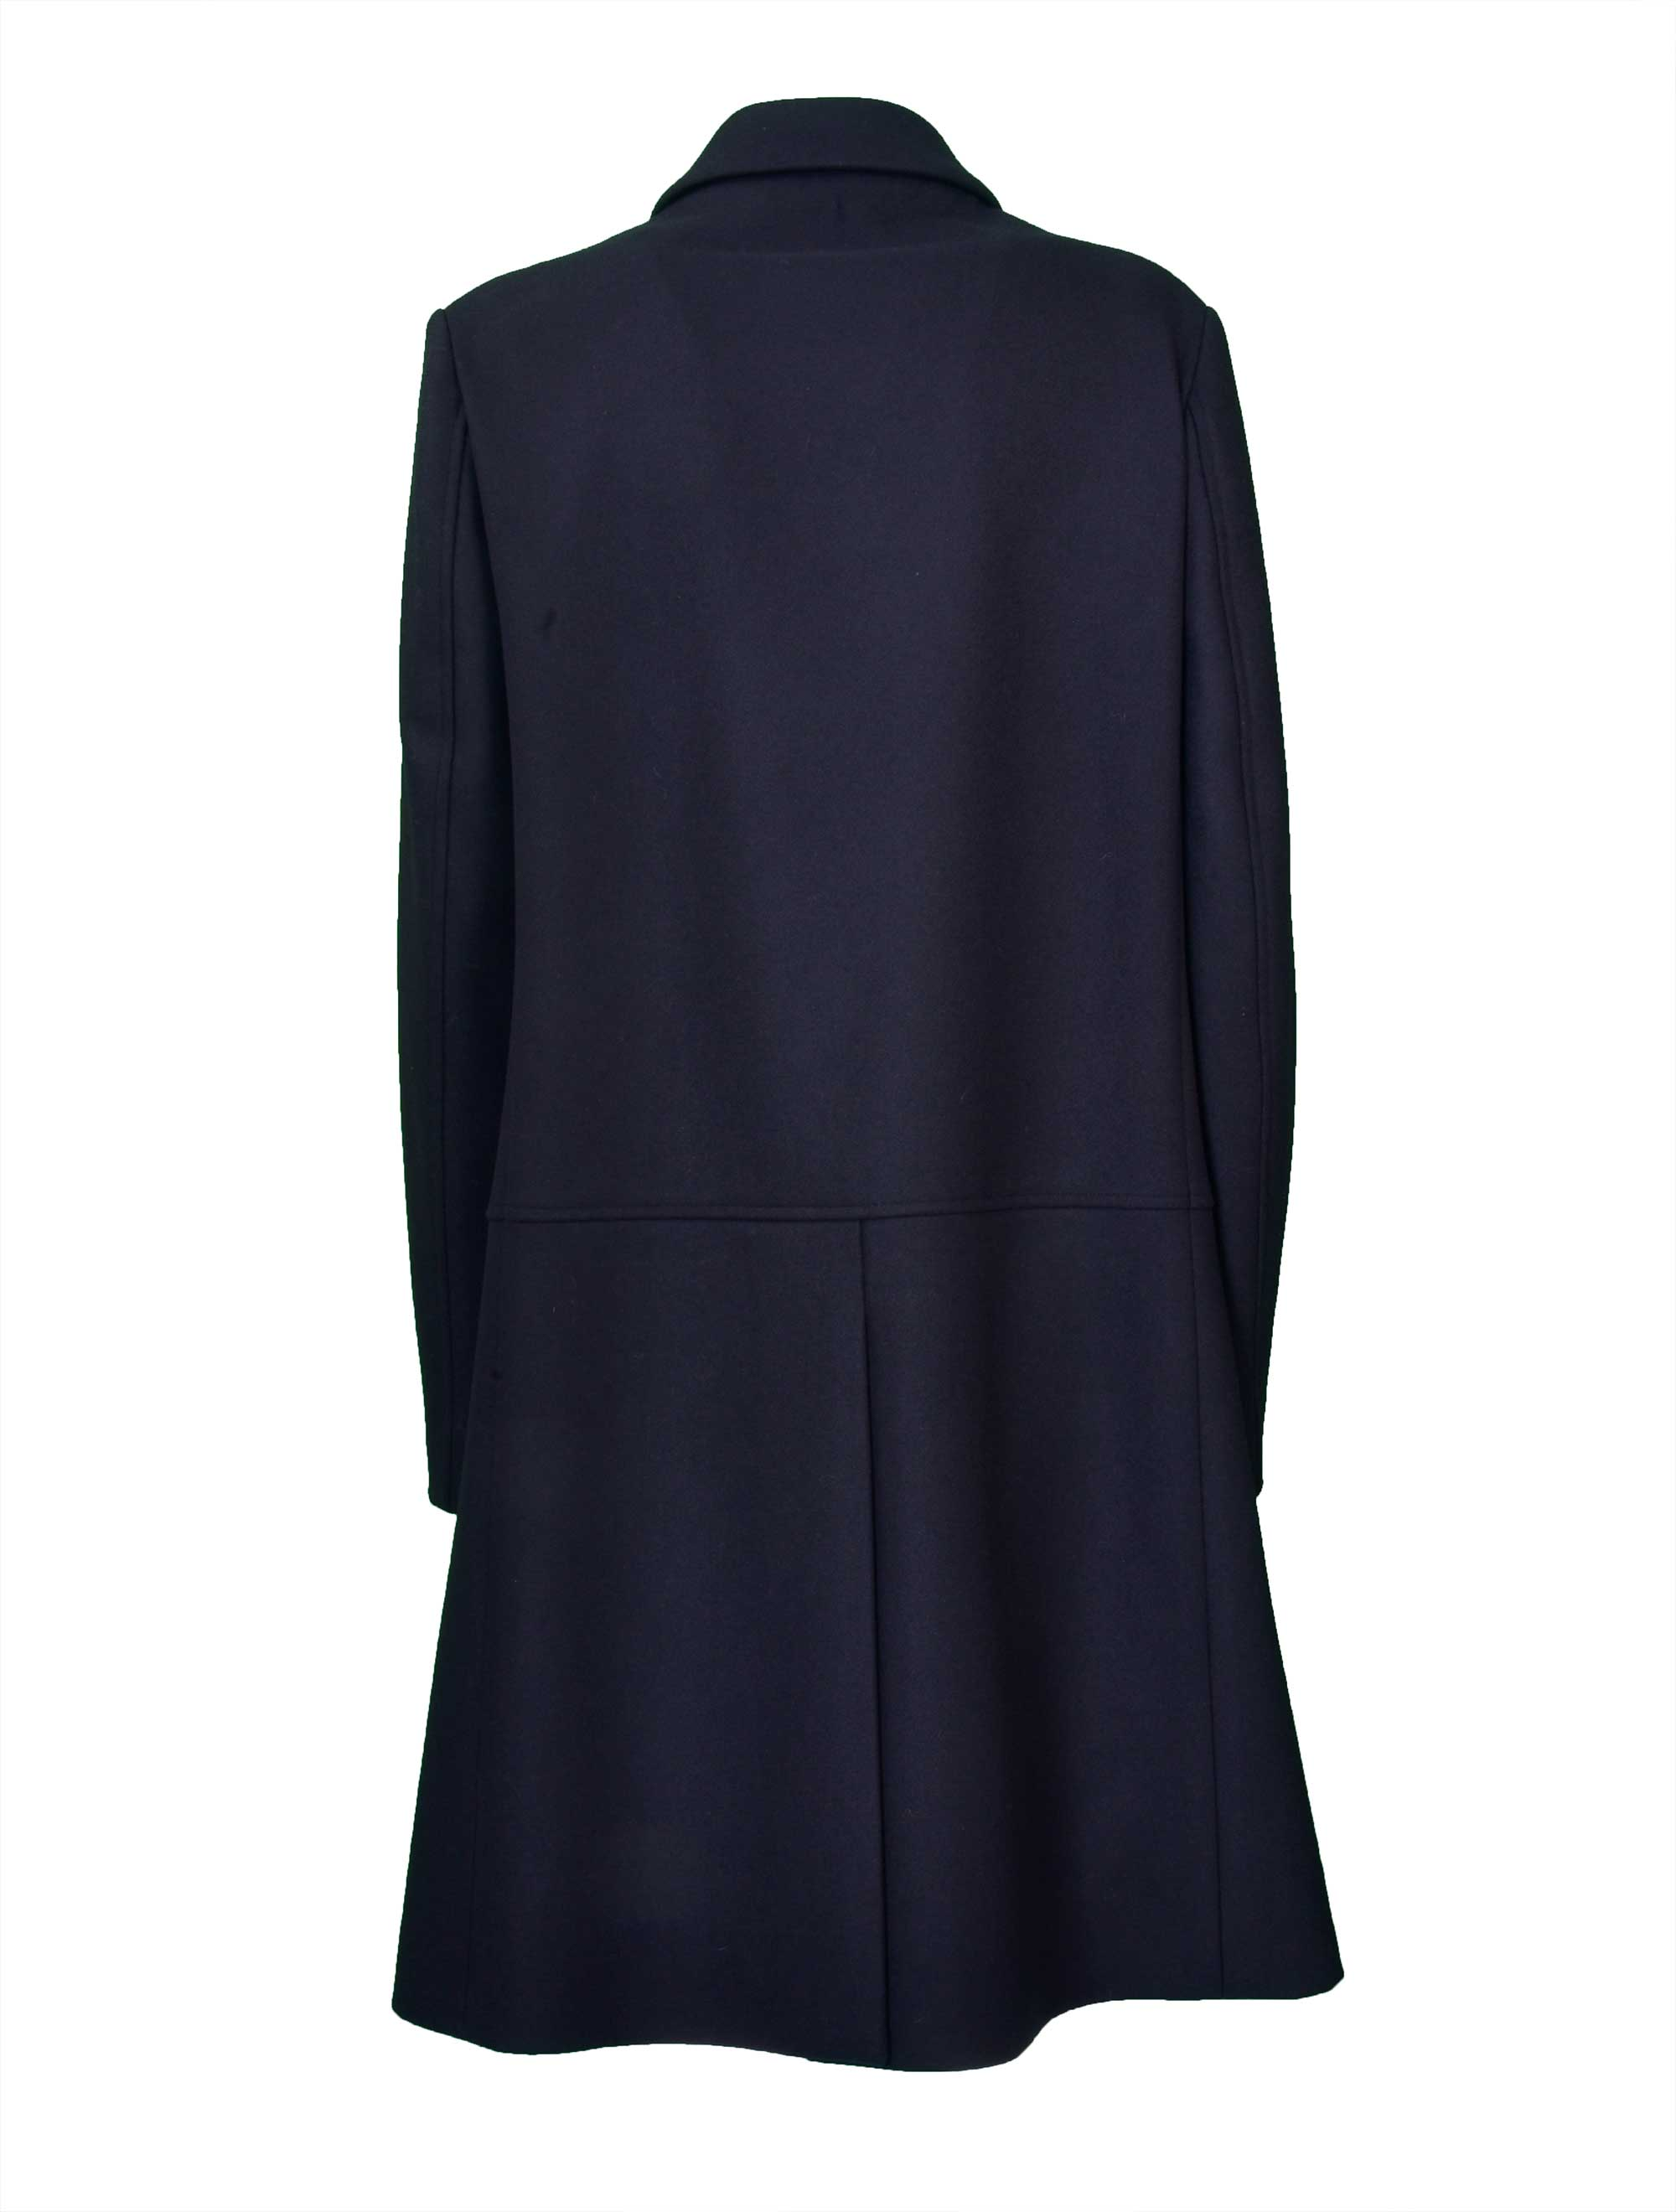 Picture of Jil Sander Navy D | Single Breasted Coat